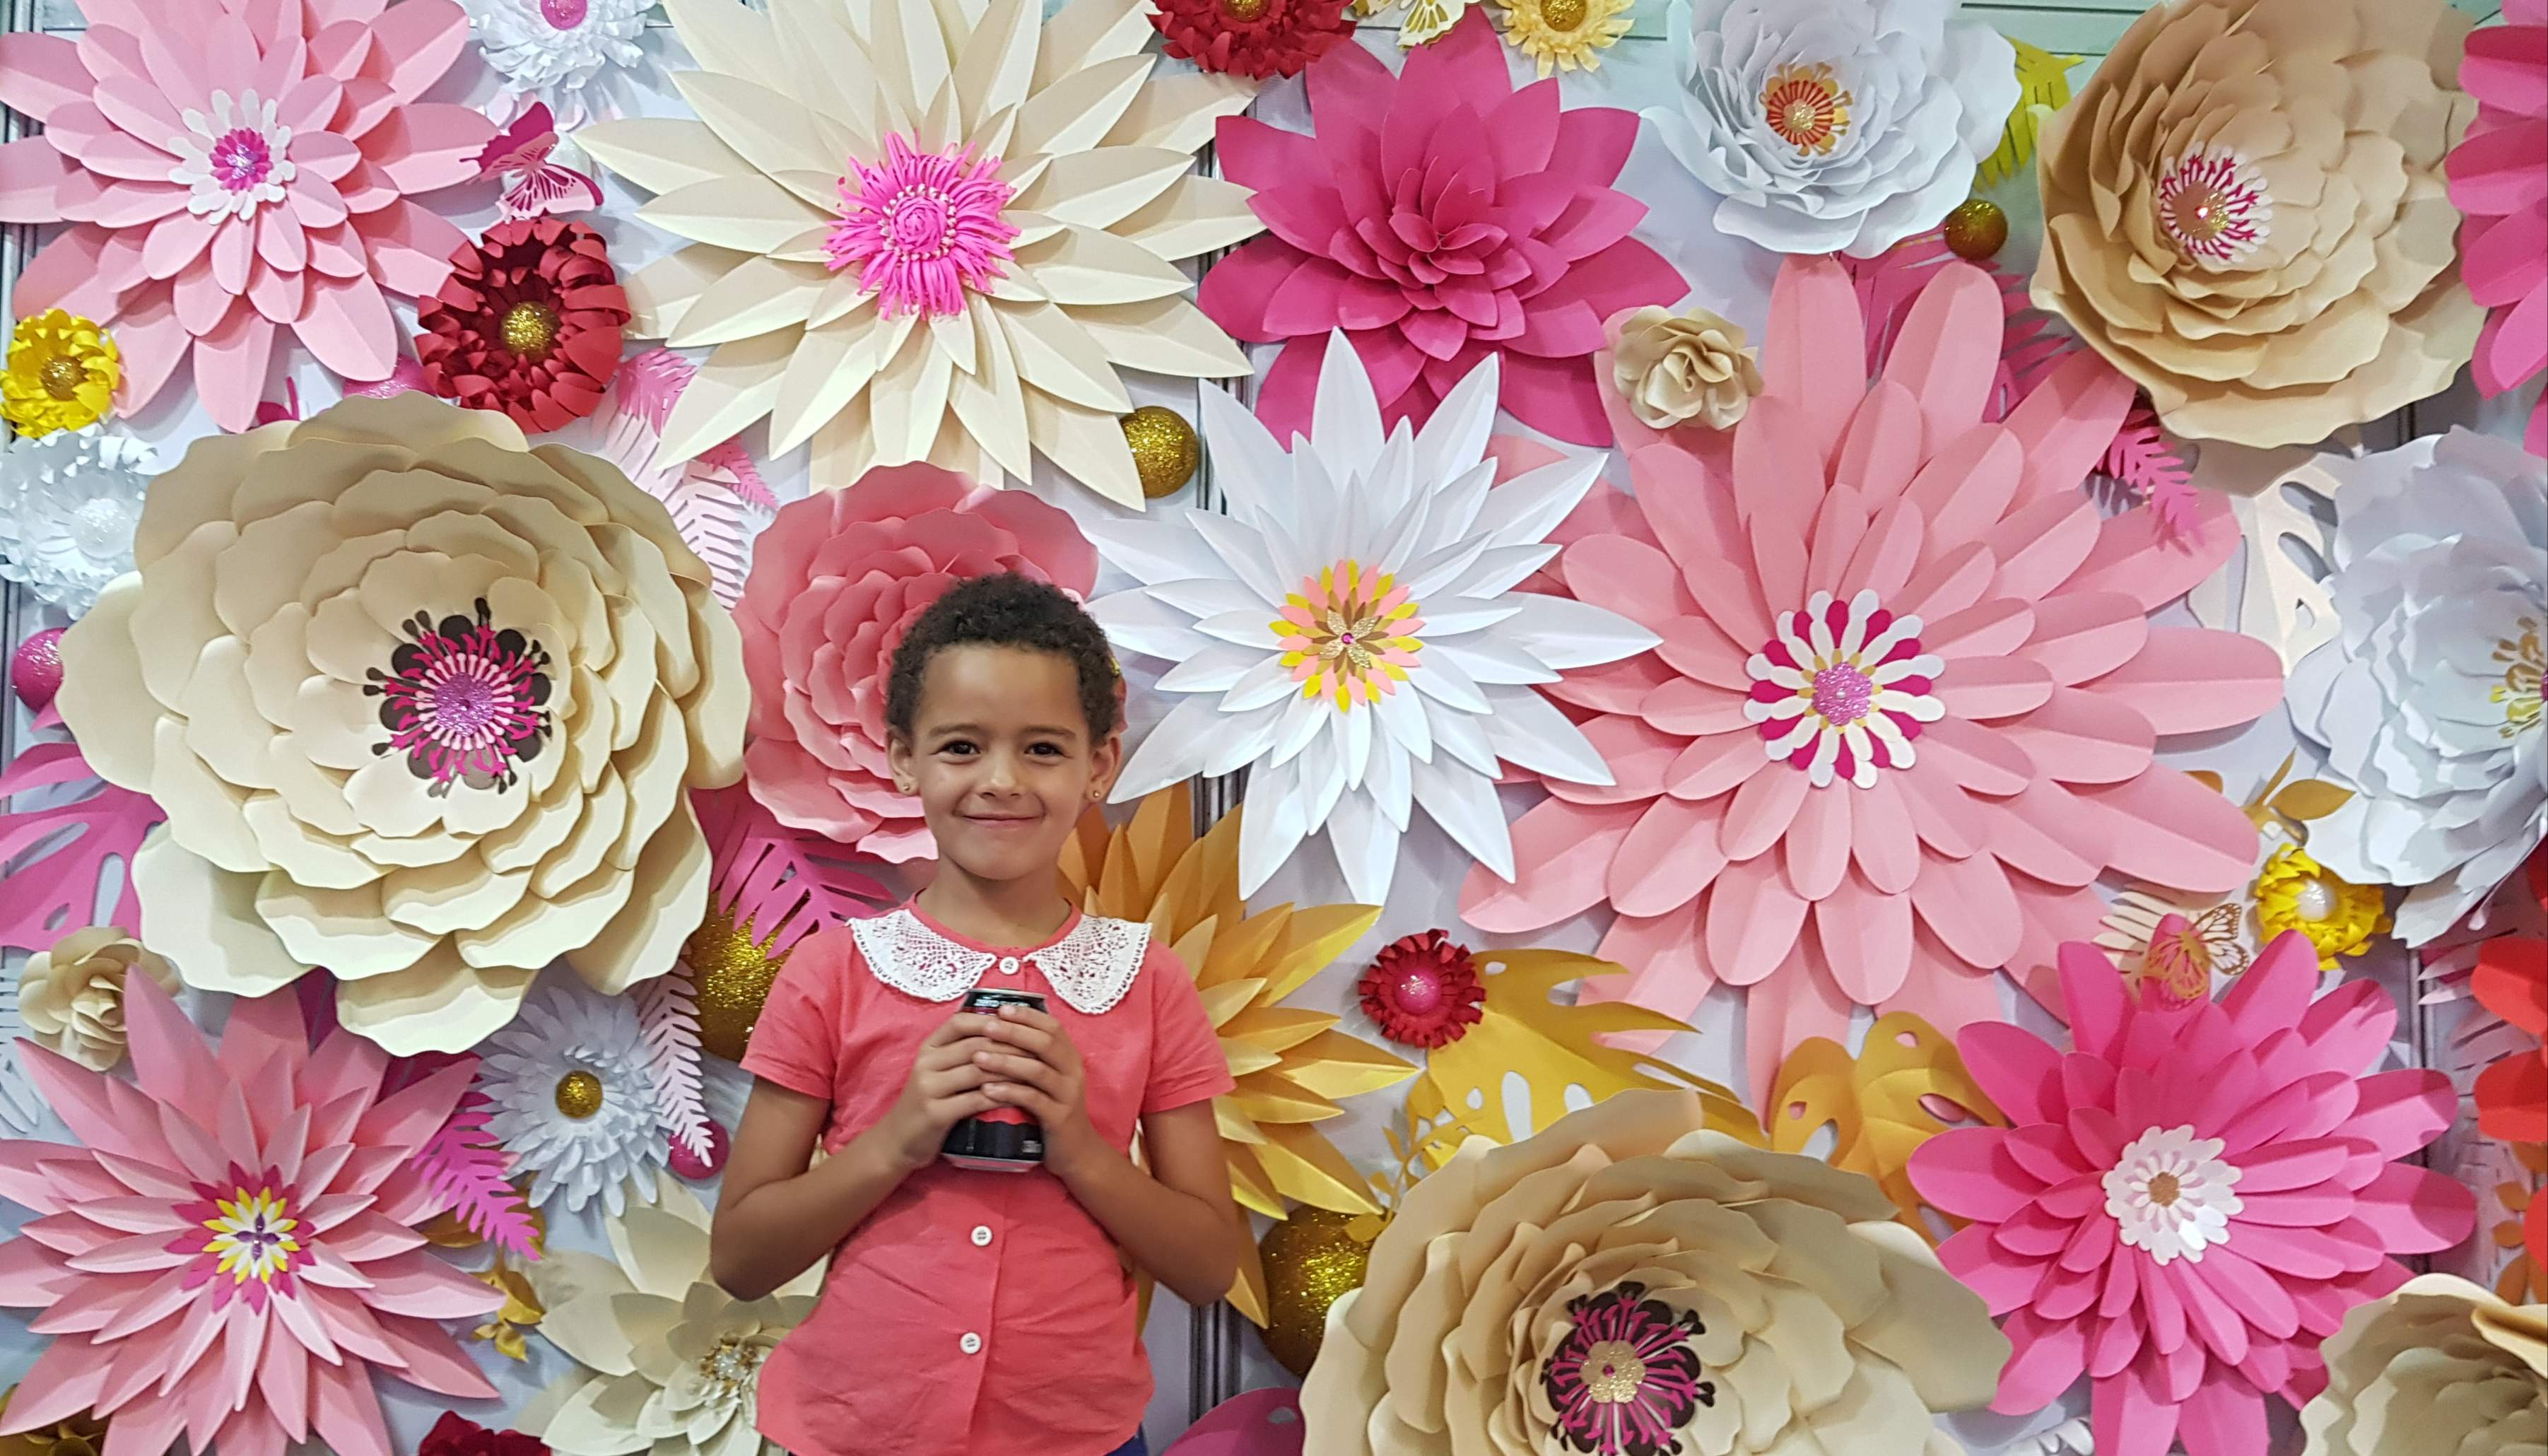 giant paper flowers and decor